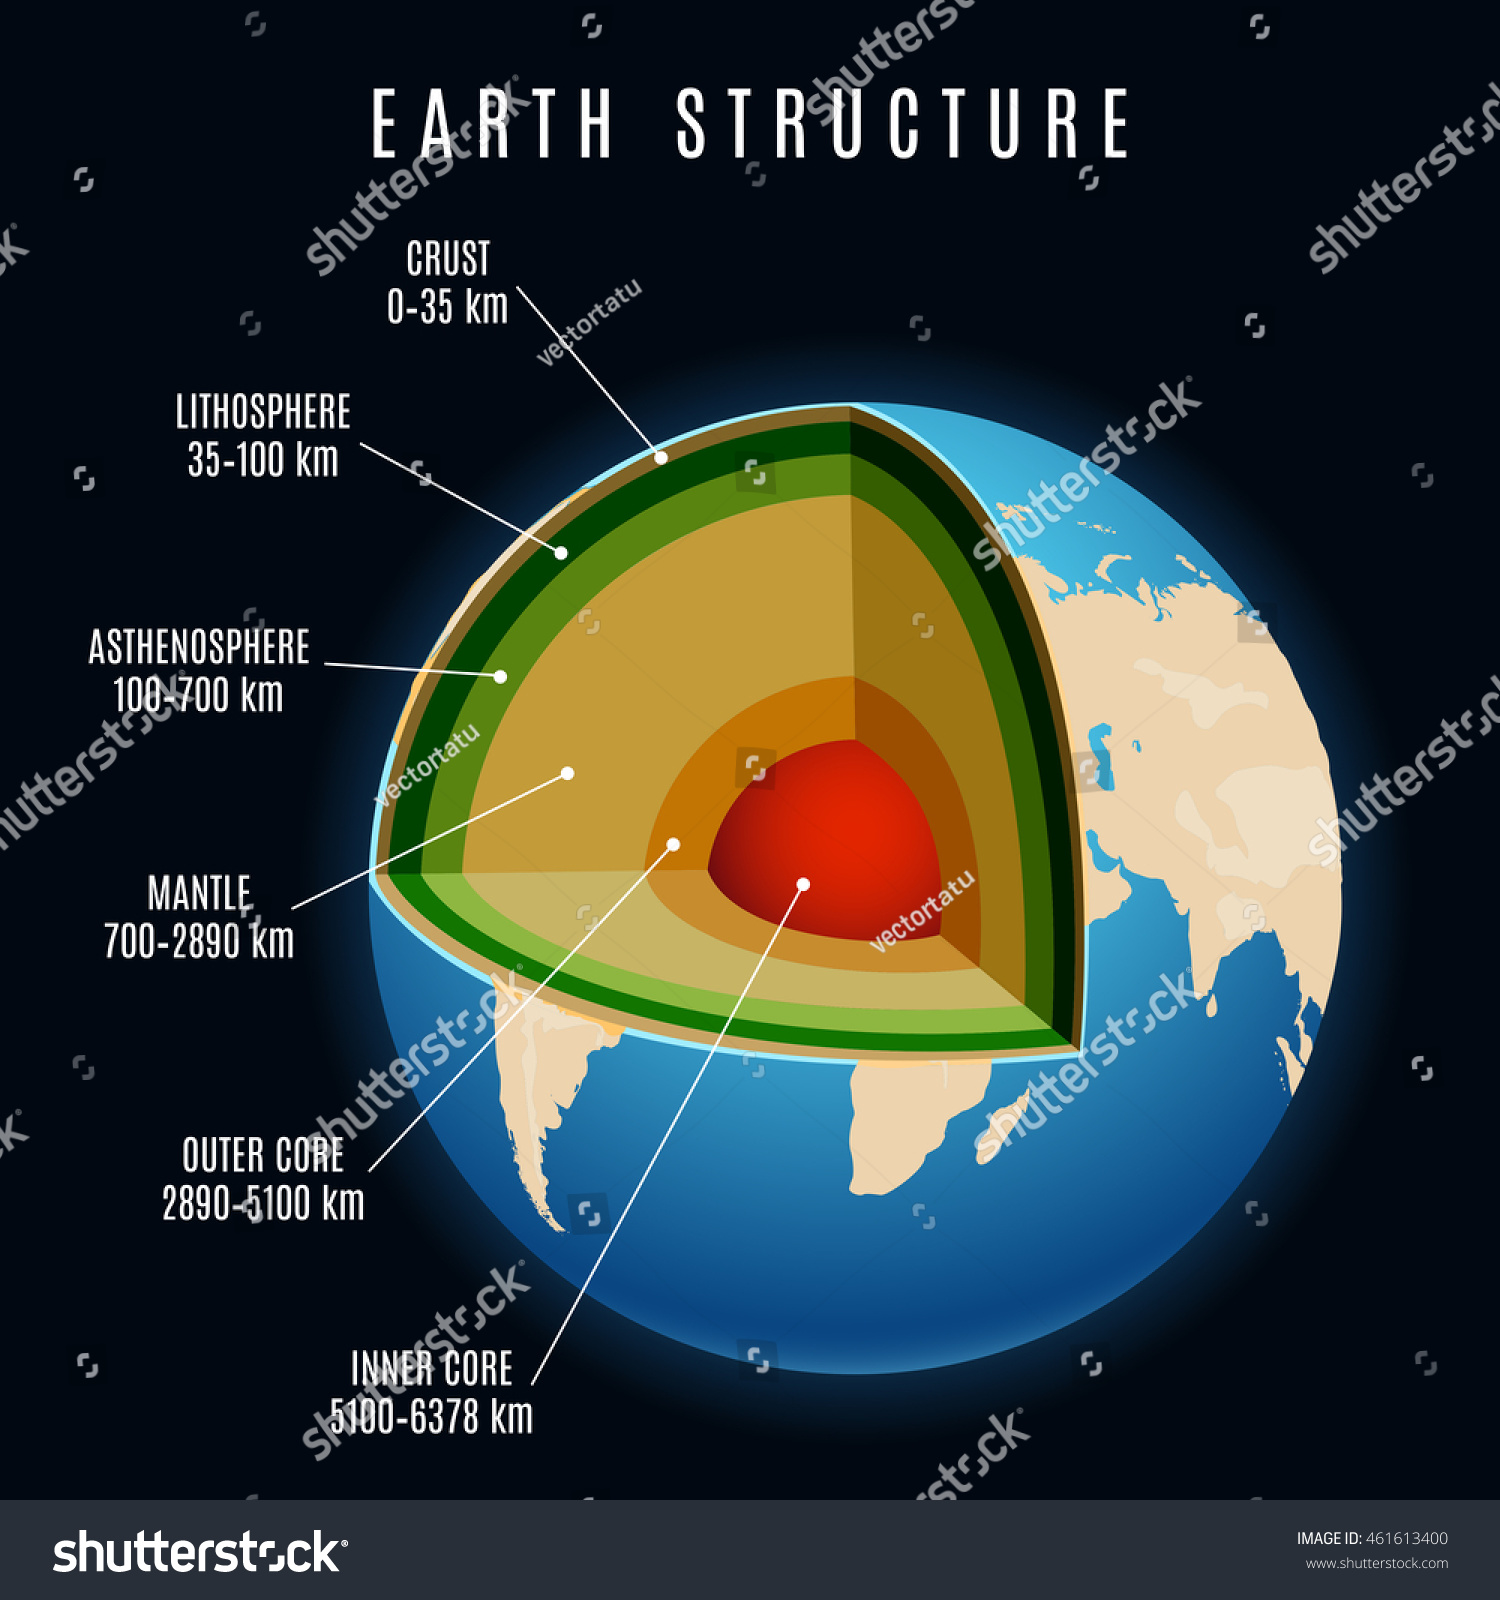 Earth Structure With Lithosphere And Continental Crust Earth Mantle And Earth Core Vector